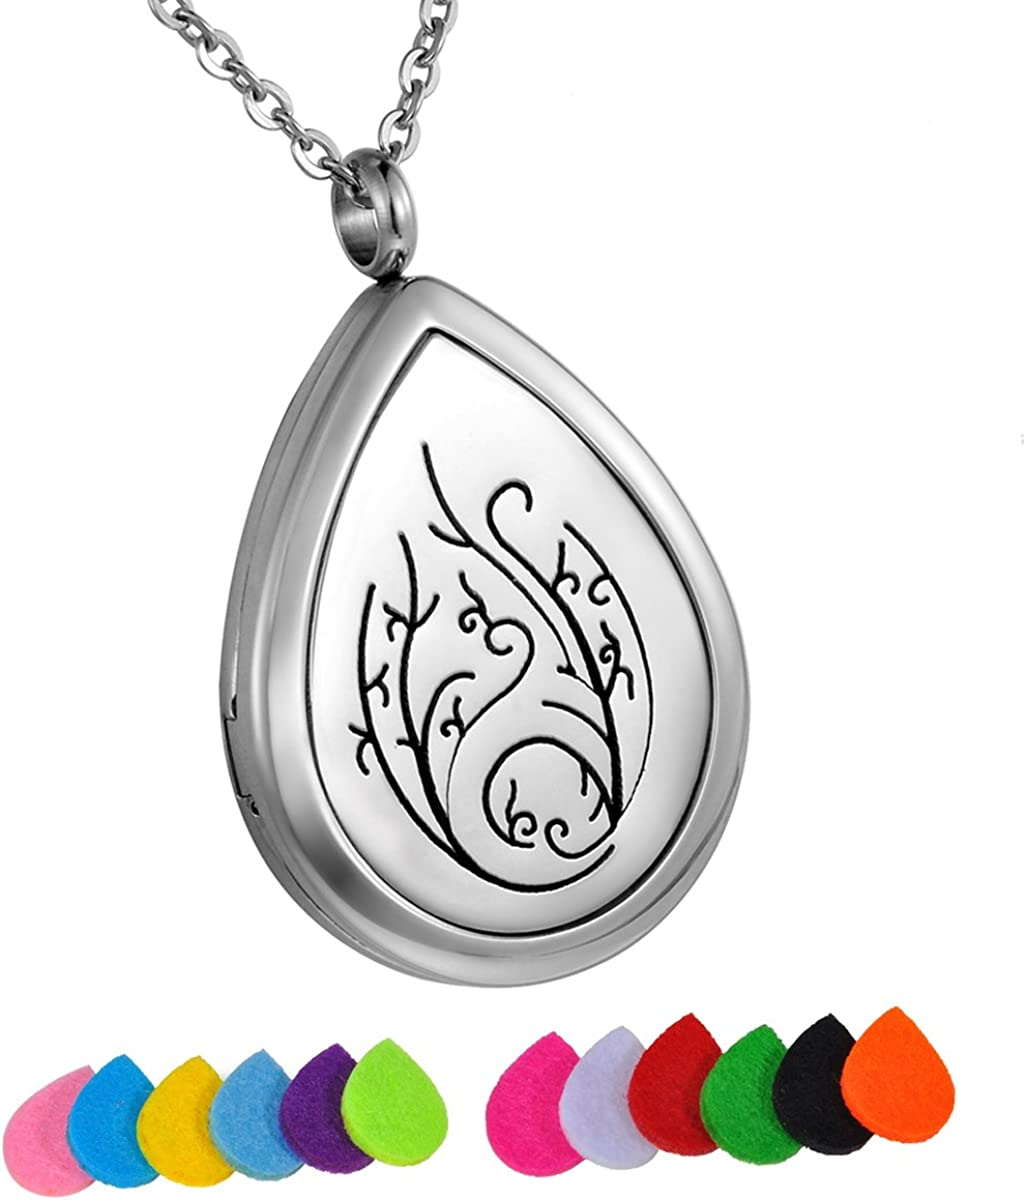 HooAMI Aromatherapy Essential Oil Diffuser Necklace - Stainless Steel Flower Waterdrop Locket Pendant